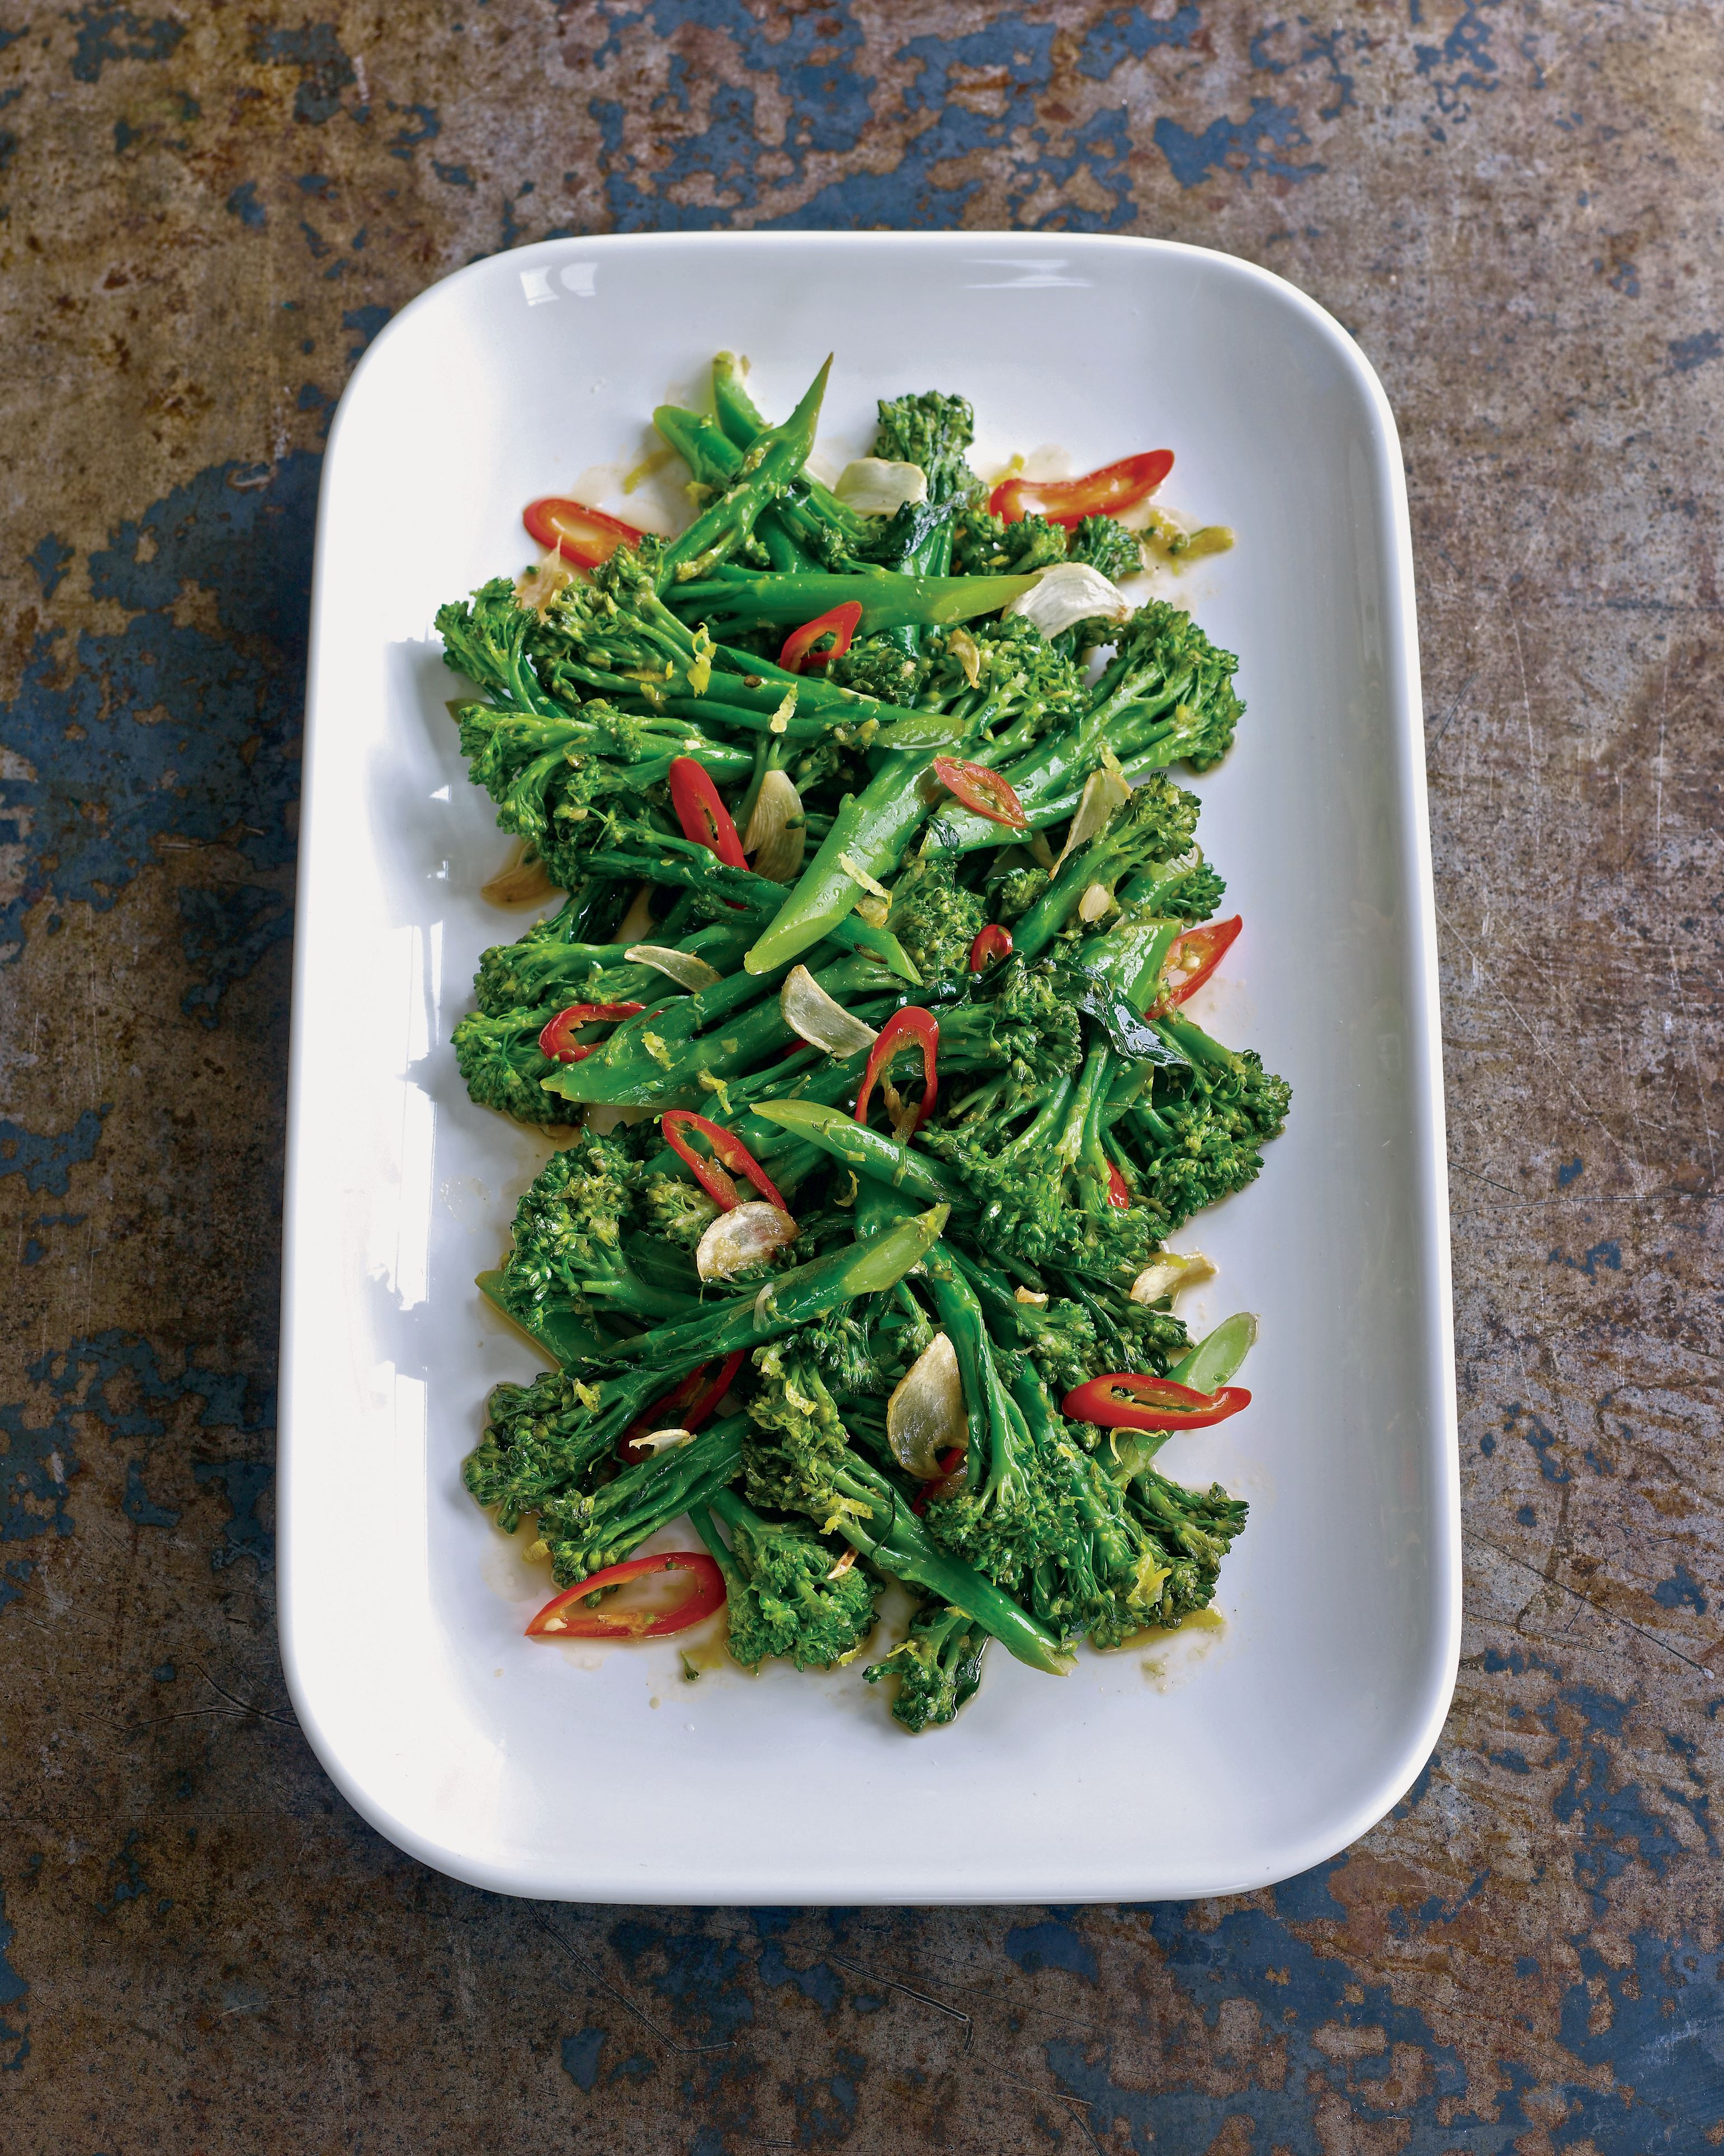 Stir-fry of tenderstem broccoli, chilli, garlic and lemon